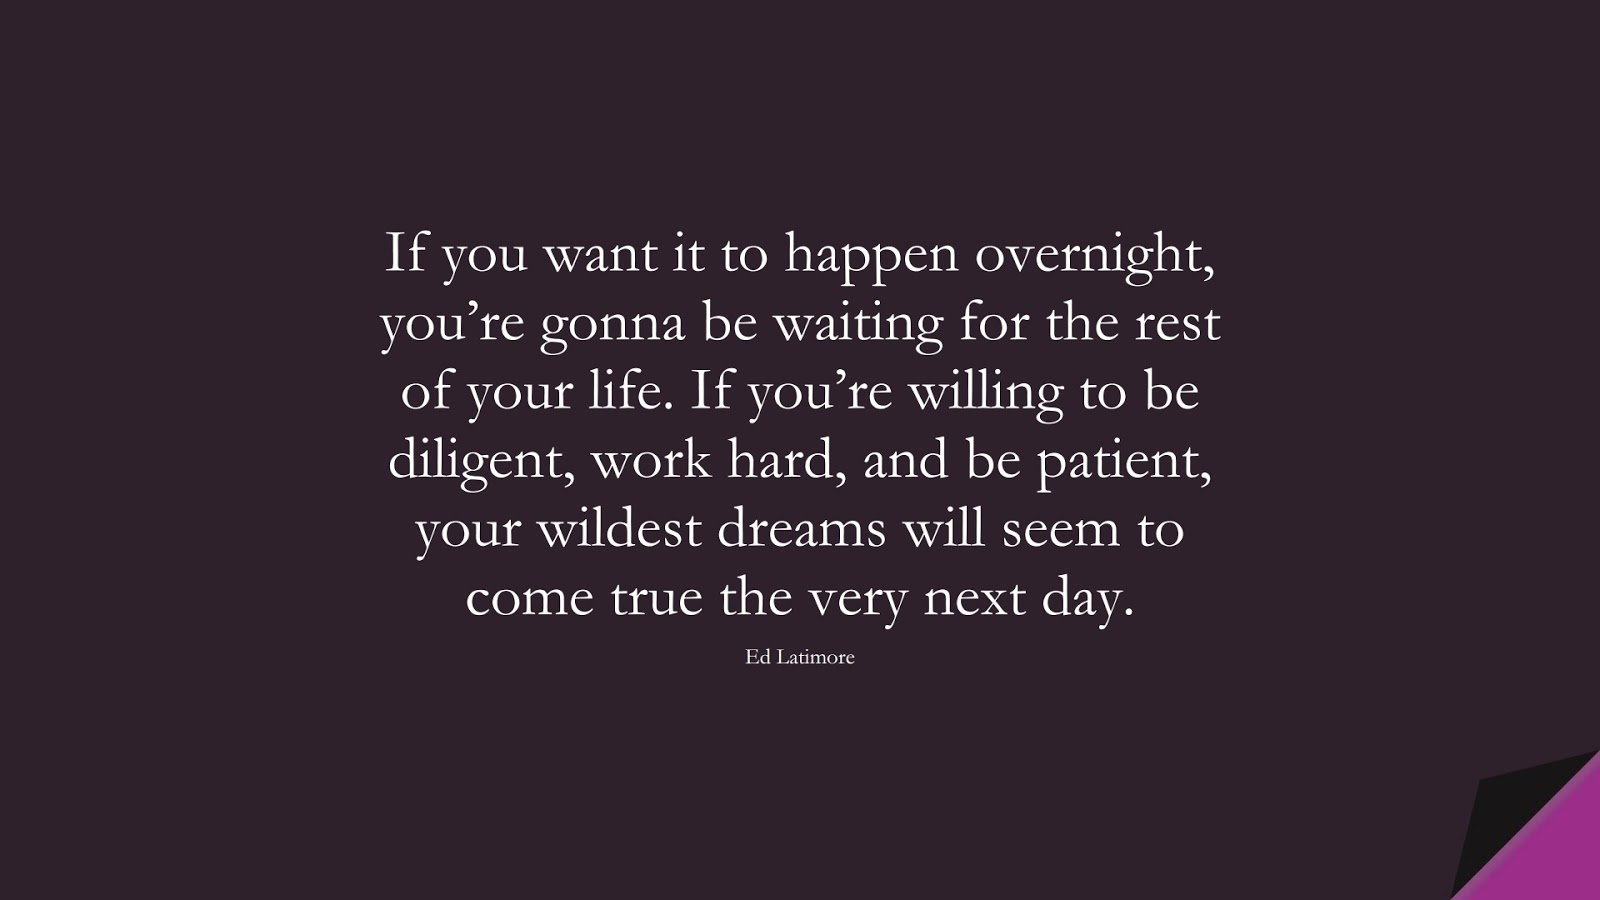 If you want it to happen overnight, you're gonna be waiting for the rest of your life. If you're willing to be diligent, work hard, and be patient, your wildest dreams will seem to come true the very next day. (Ed Latimore);  #NeverGiveUpQuotes